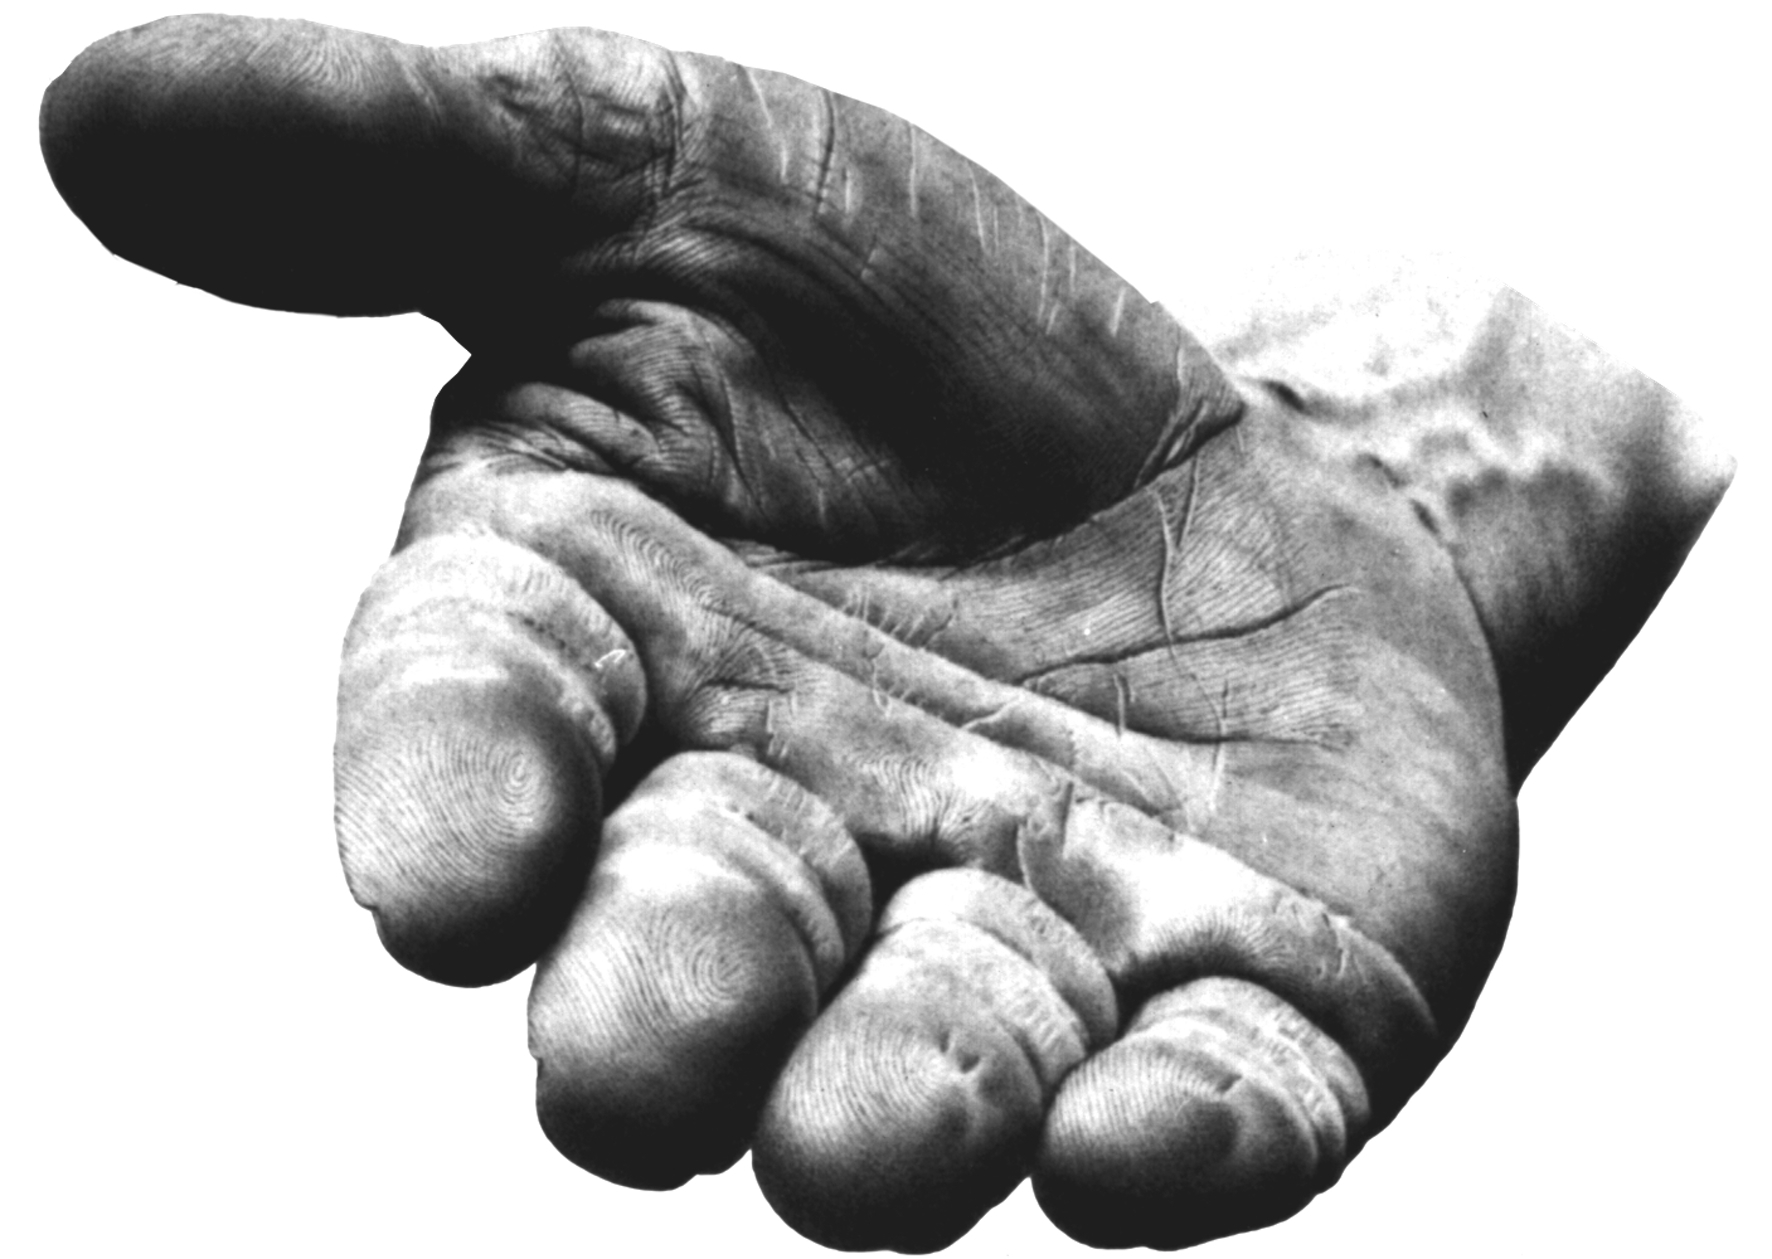 the black and white photo shows a hand in the foreground open pointing